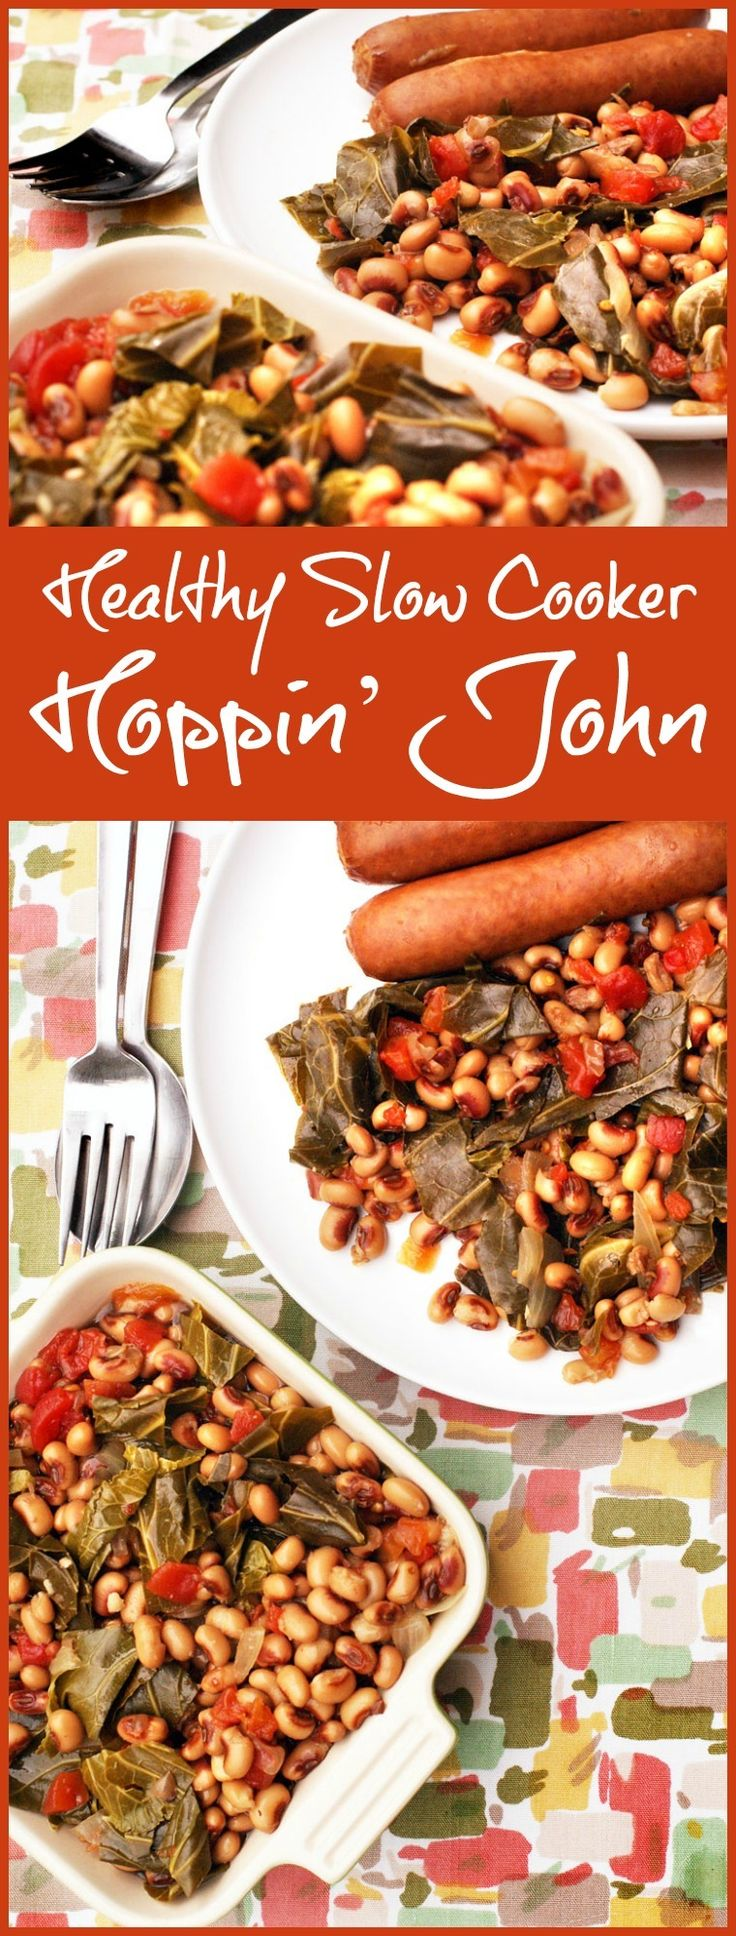 316 Best Images About Slow Cookin' On Pinterest Italian Chicken Soup, Slow  Cooker Beef How To Cook Quinoa